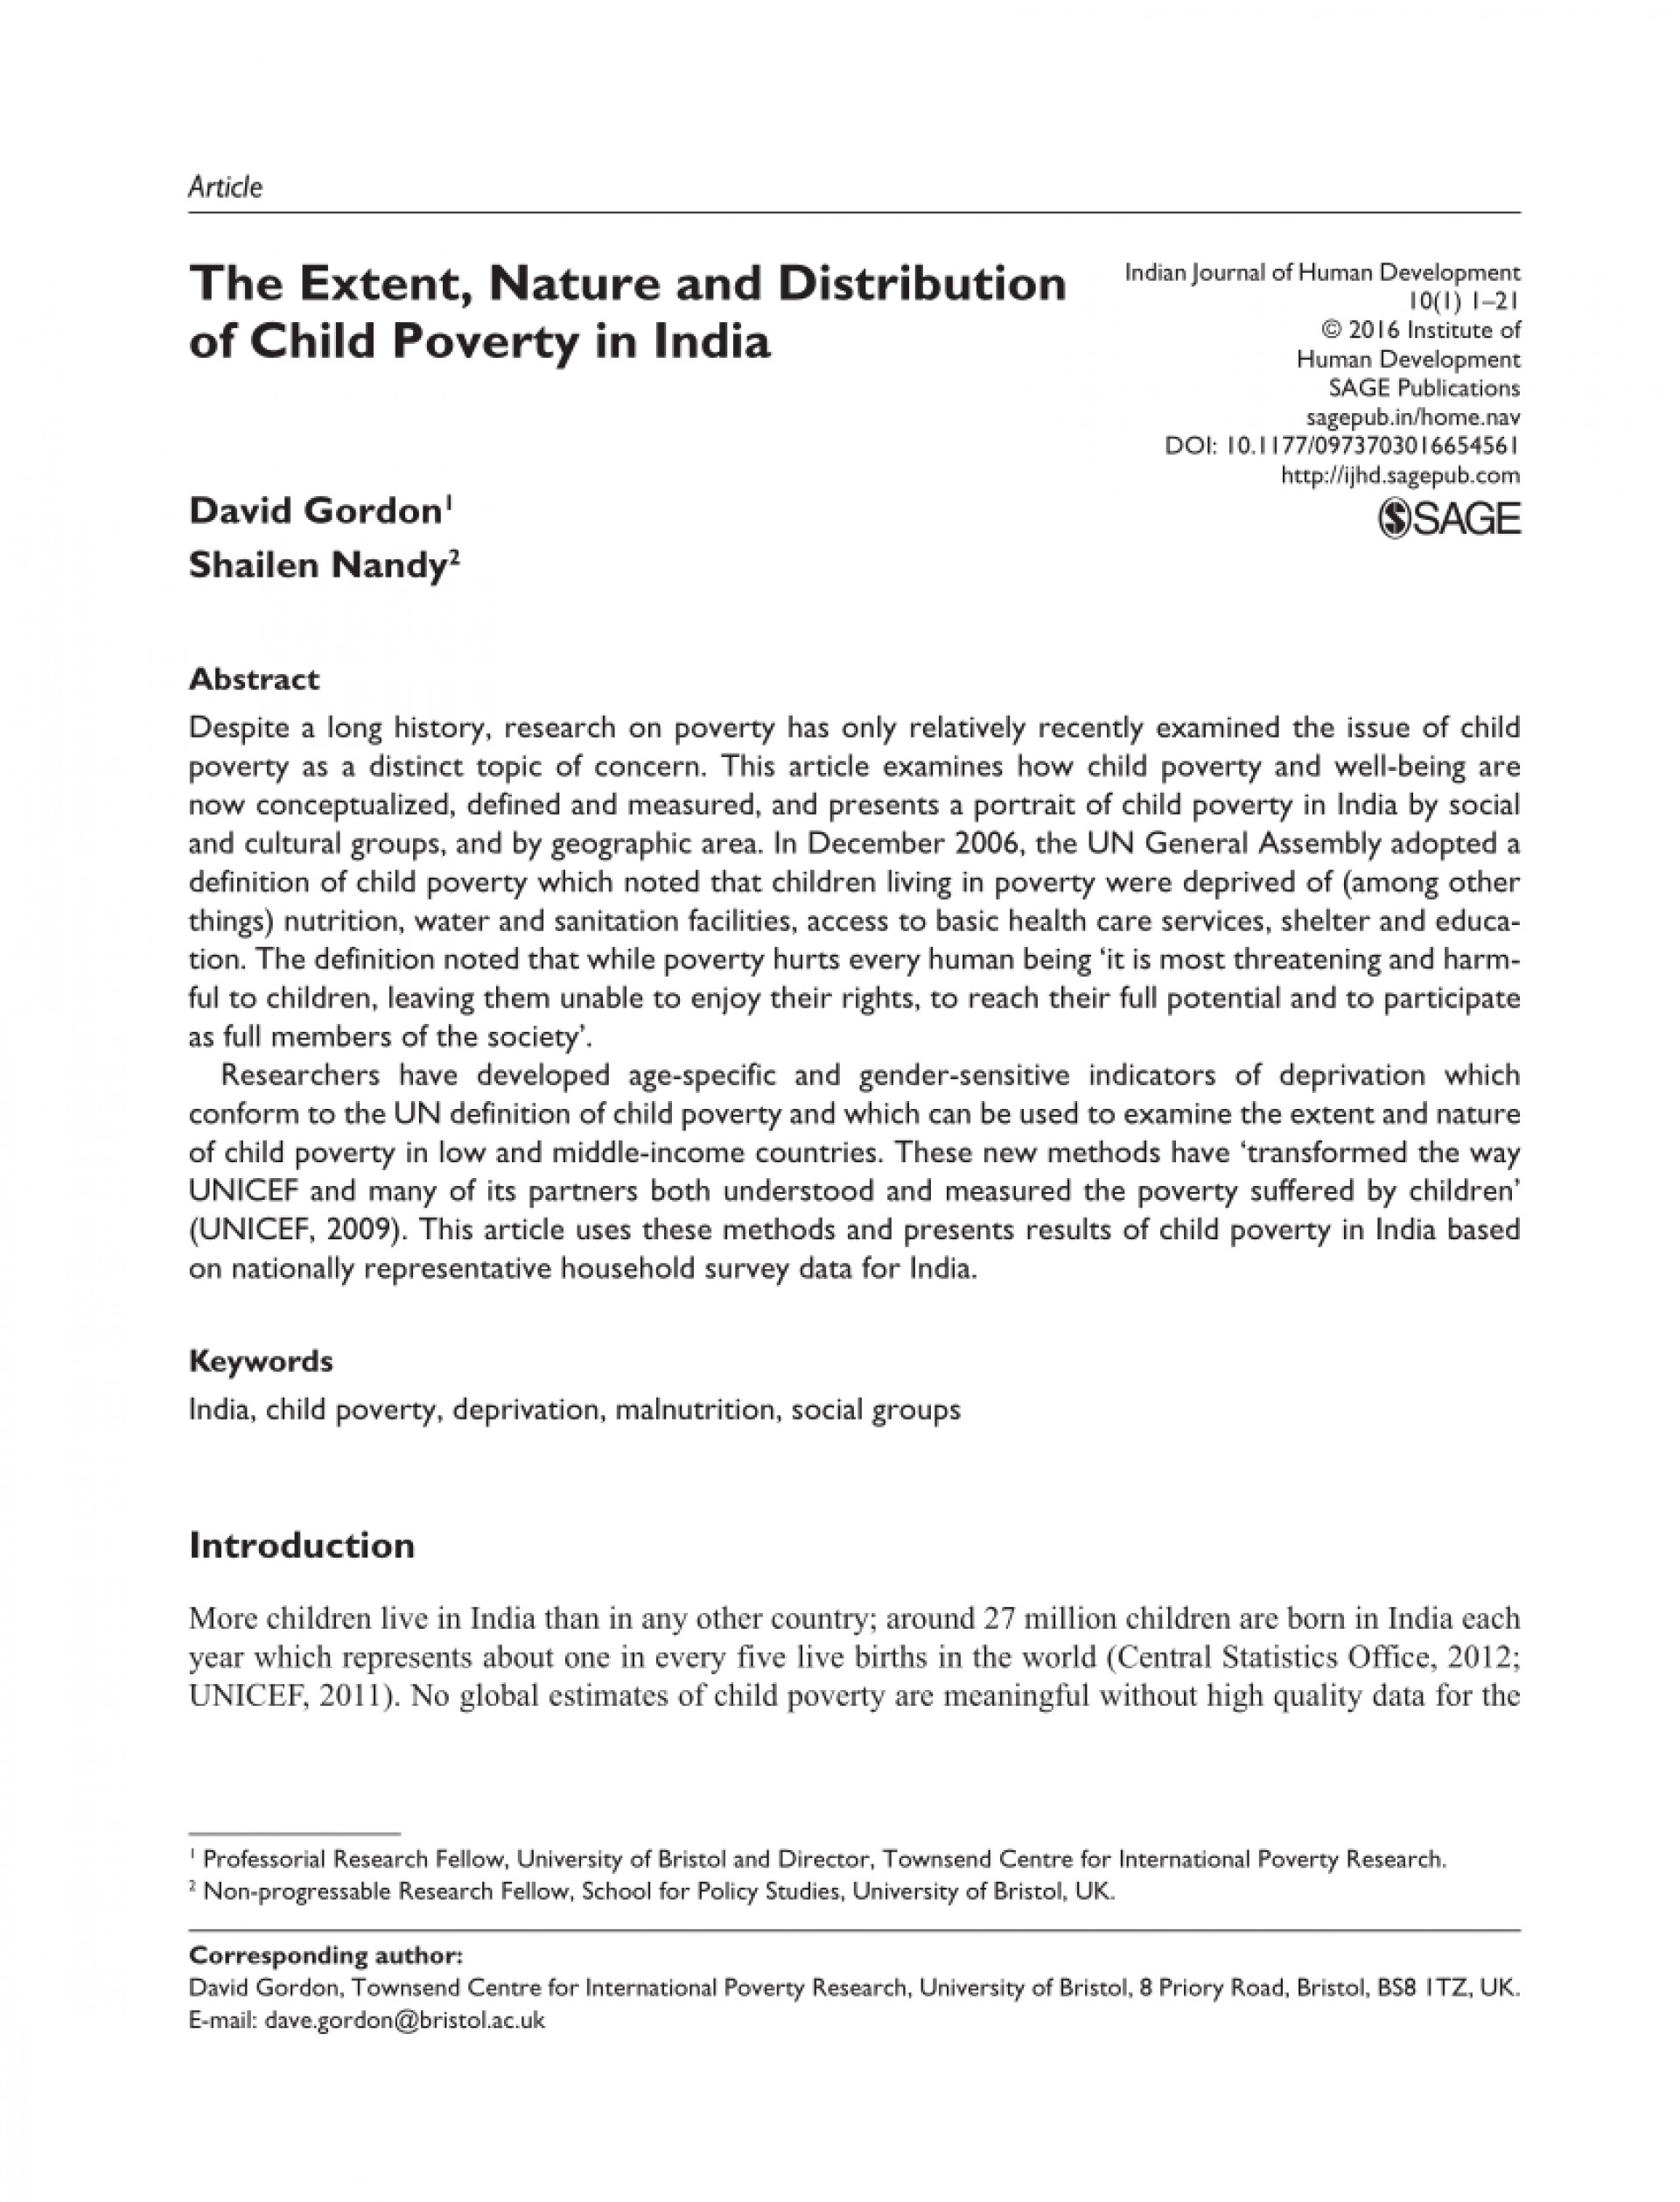 003 Poverty In India Research Paper Pdf Impressive 1920